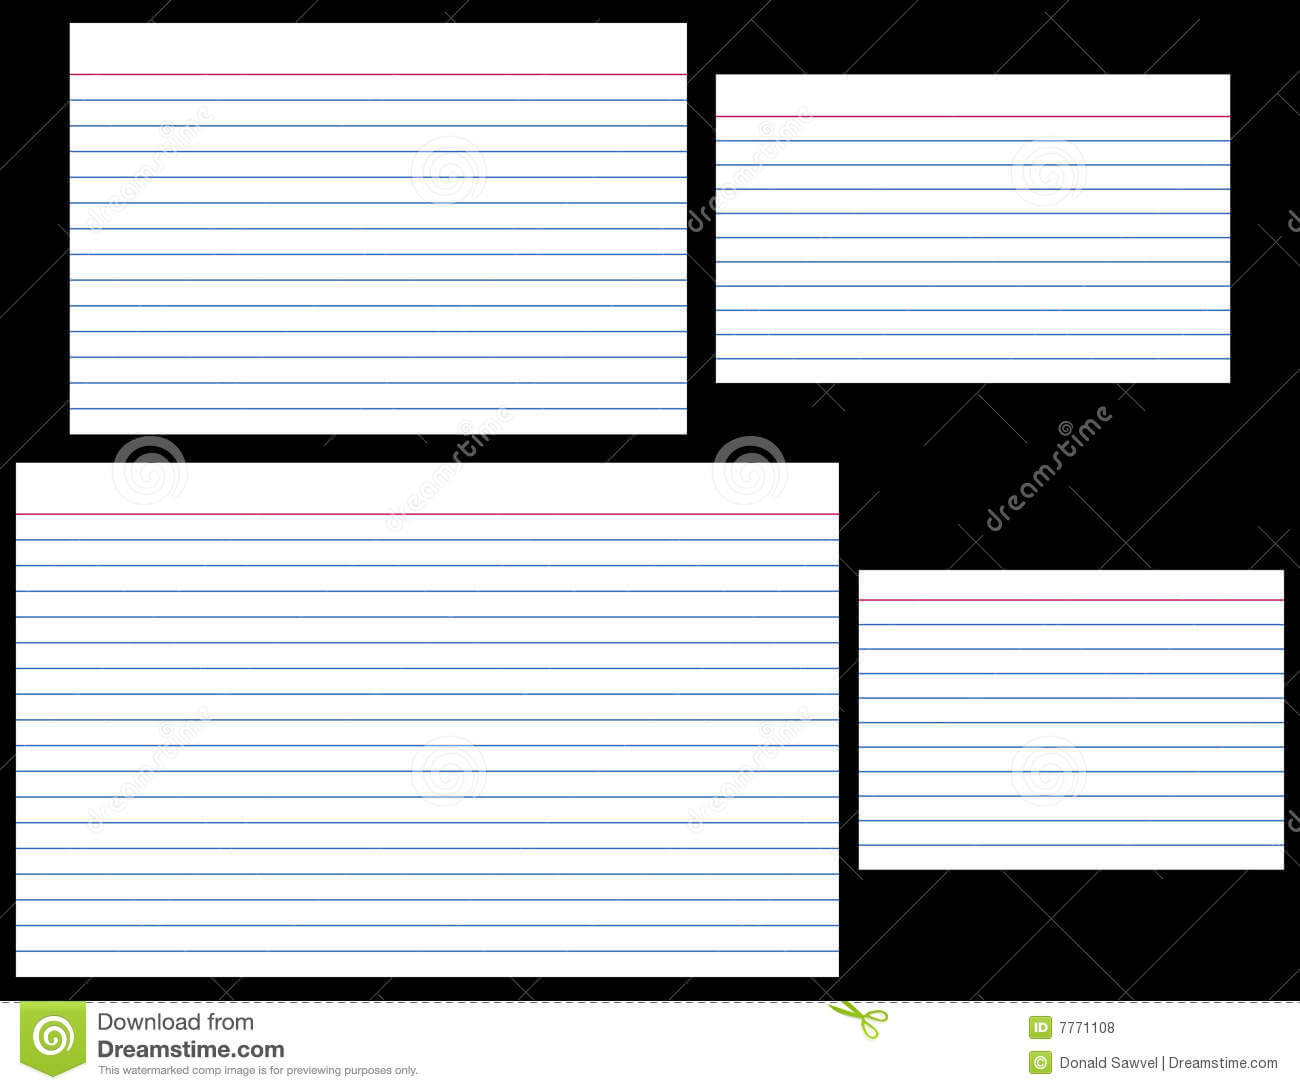 Index Cards Stock Vector. Illustration Of Stationery, Lined Pertaining To 5 By 8 Index Card Template